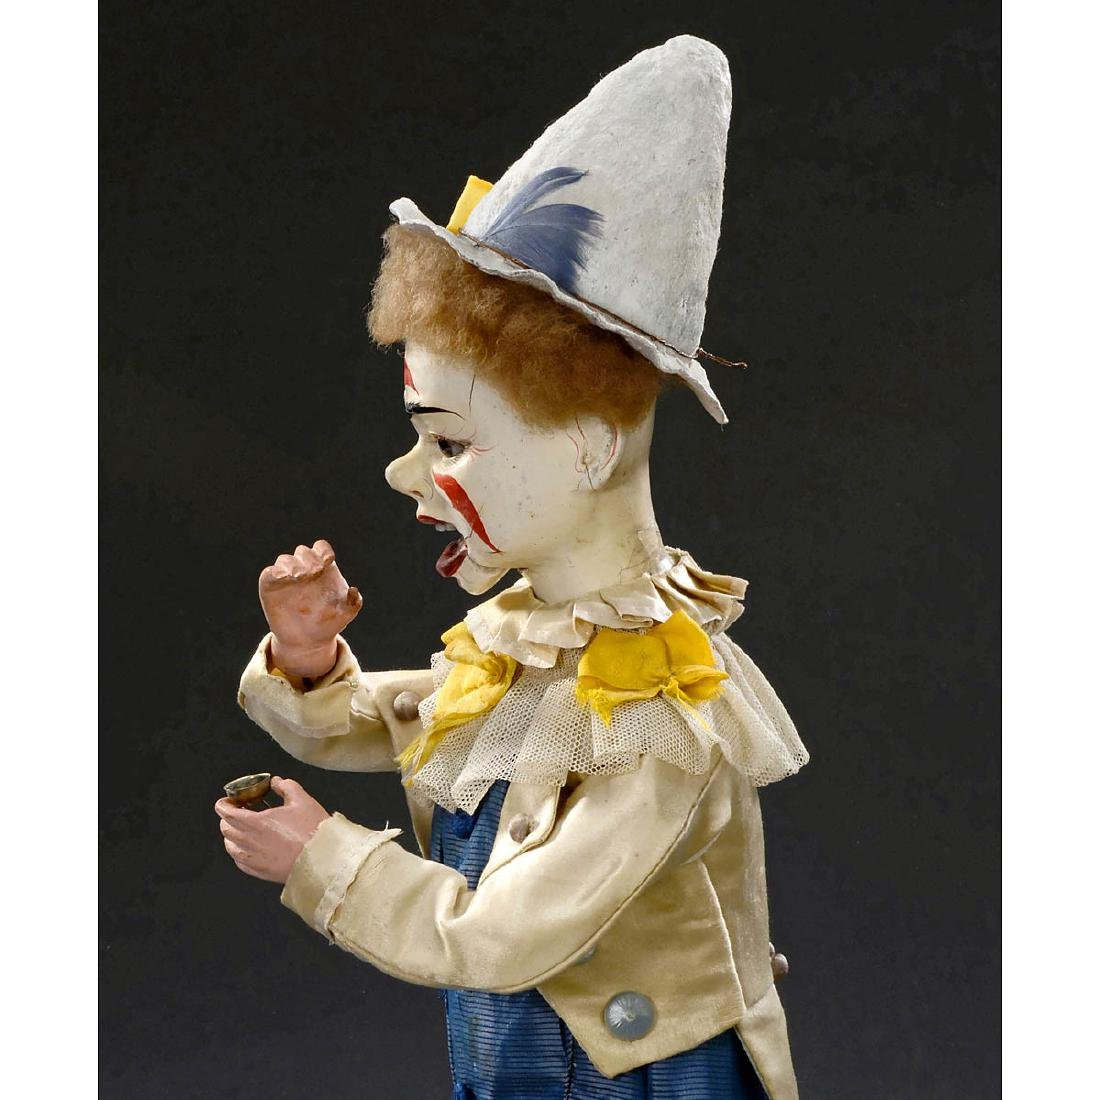 Musical Automaton Clown Taking Snuff by Adolph Müller, - 4